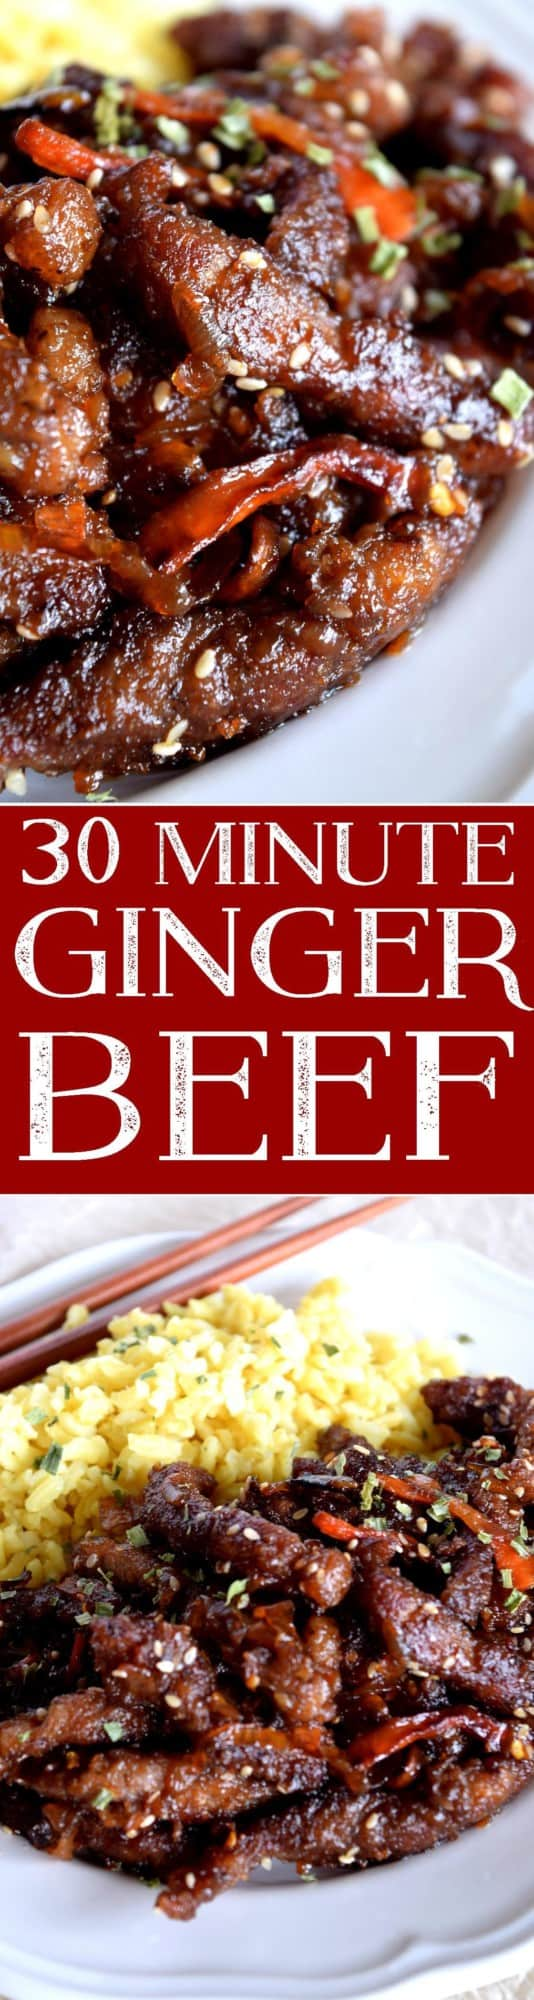 30-minute-ginger-beef